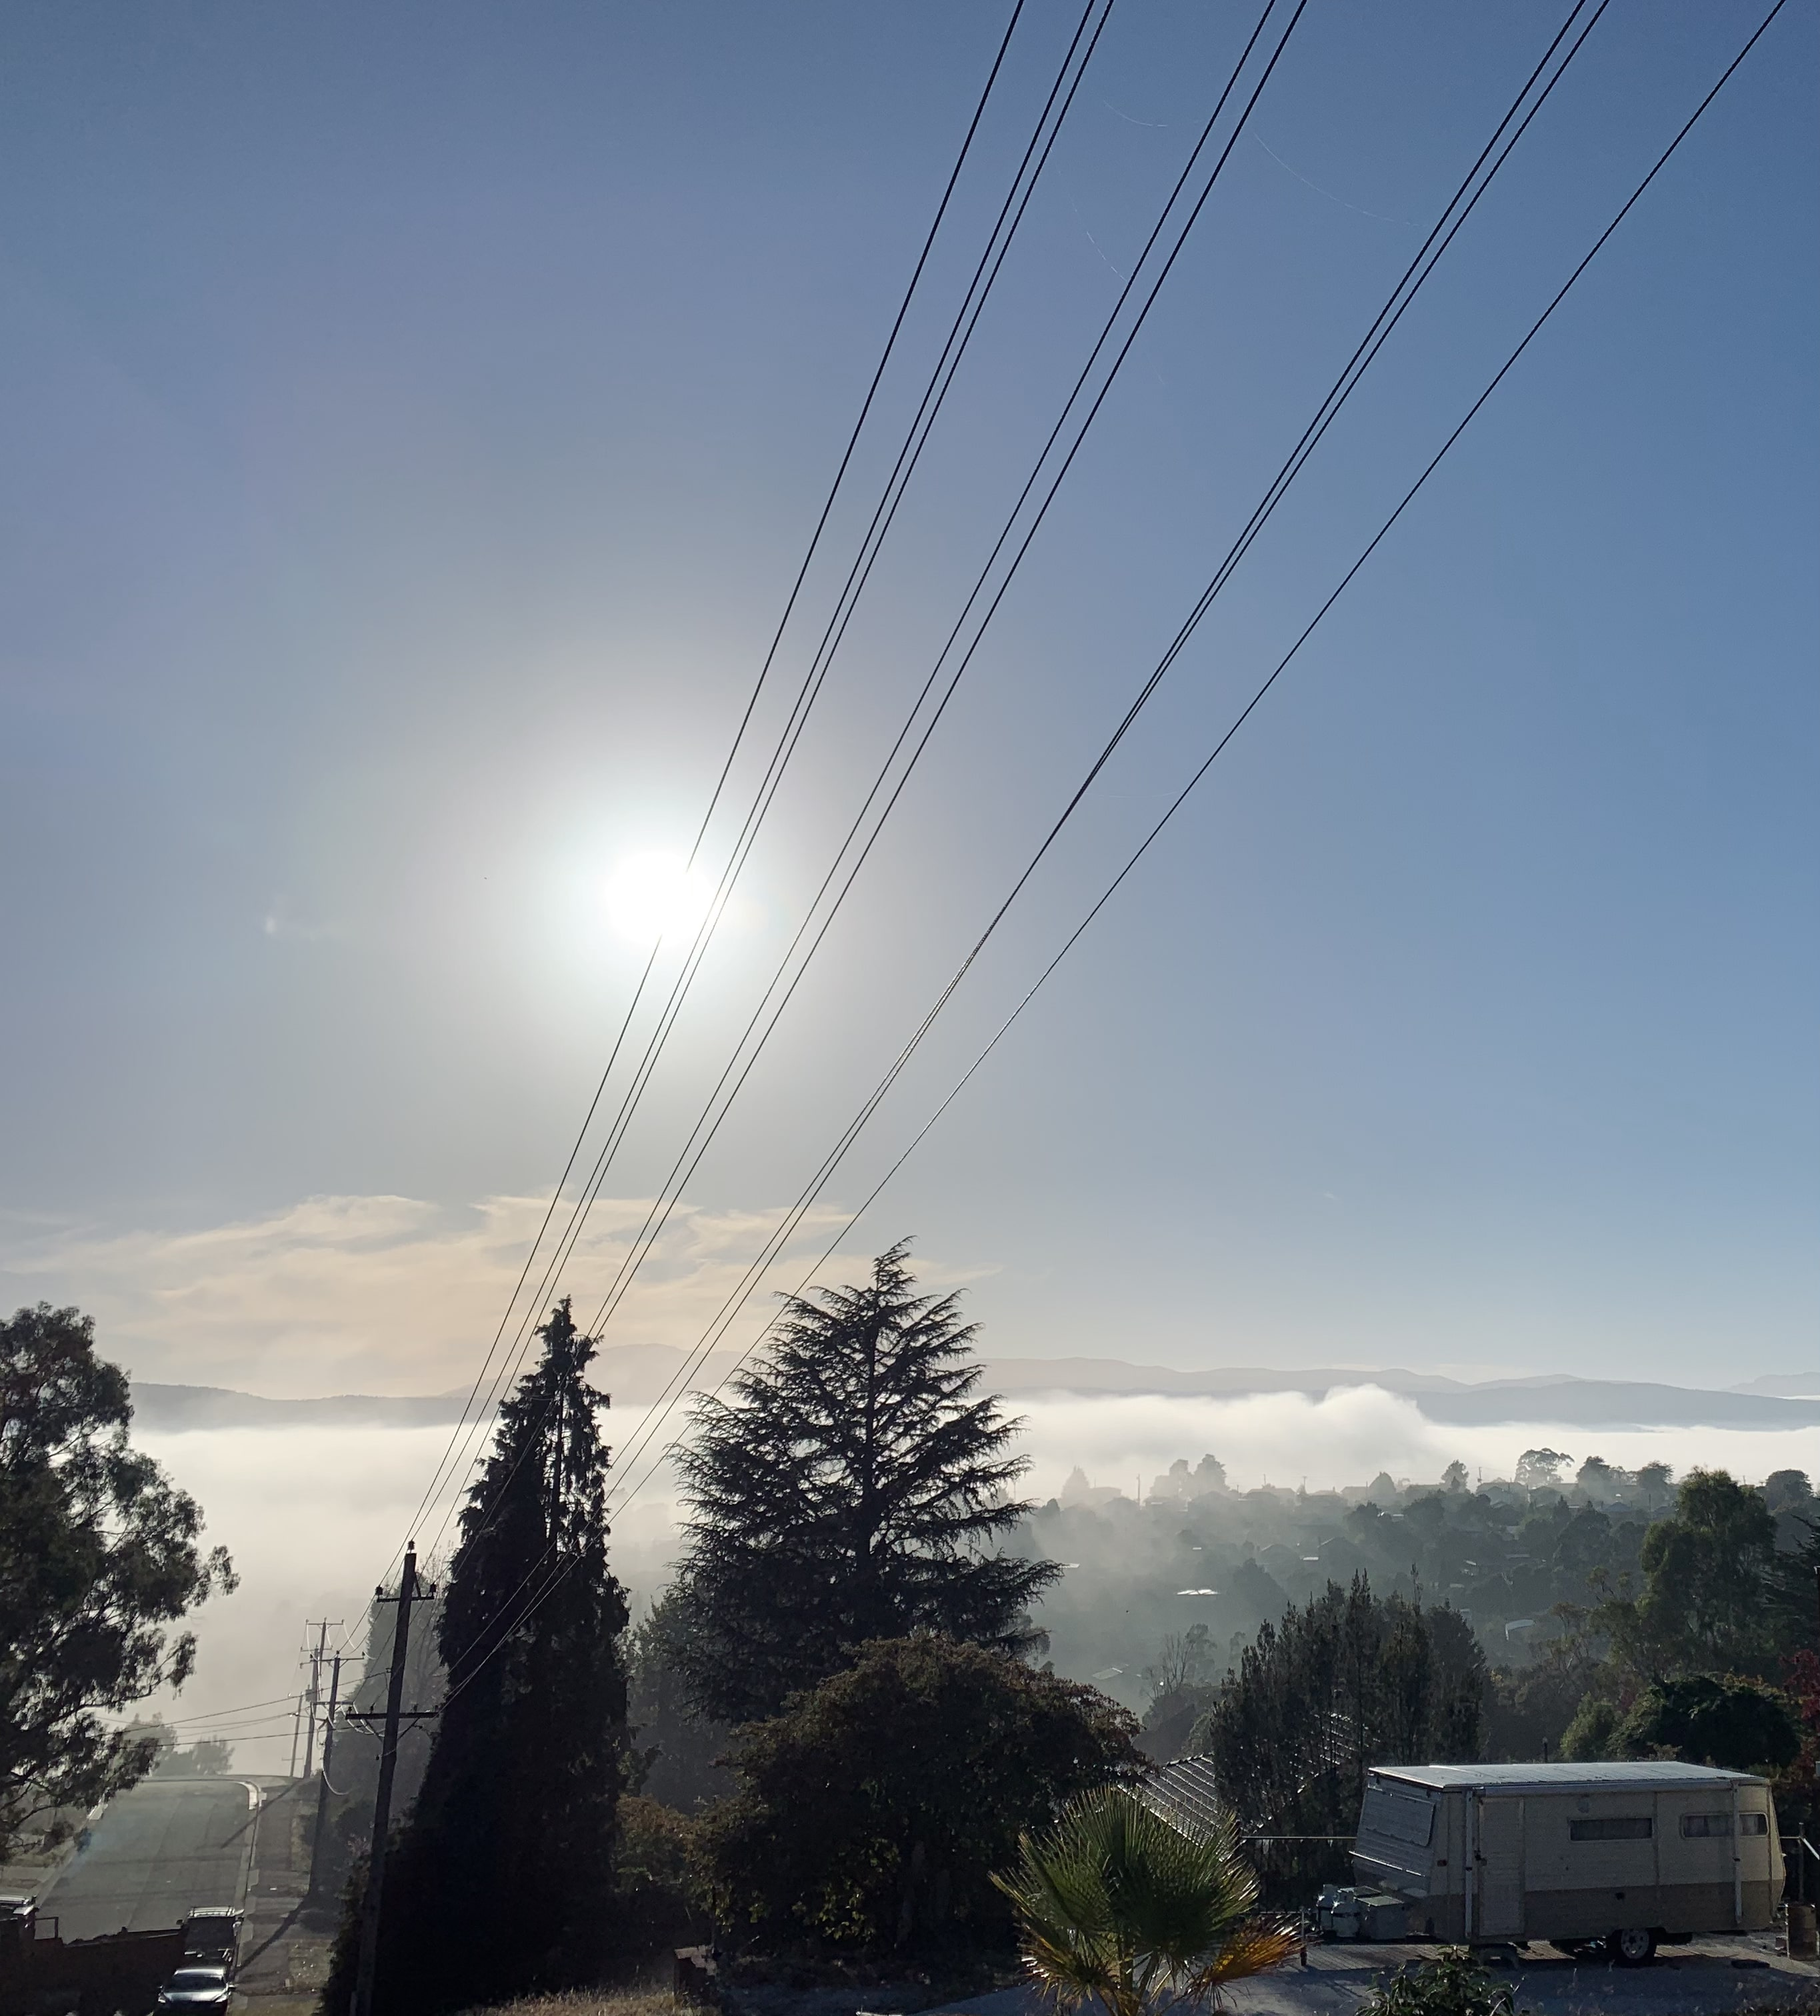 morning fog over the Launceston as seen in the distance with the sun lightly visible